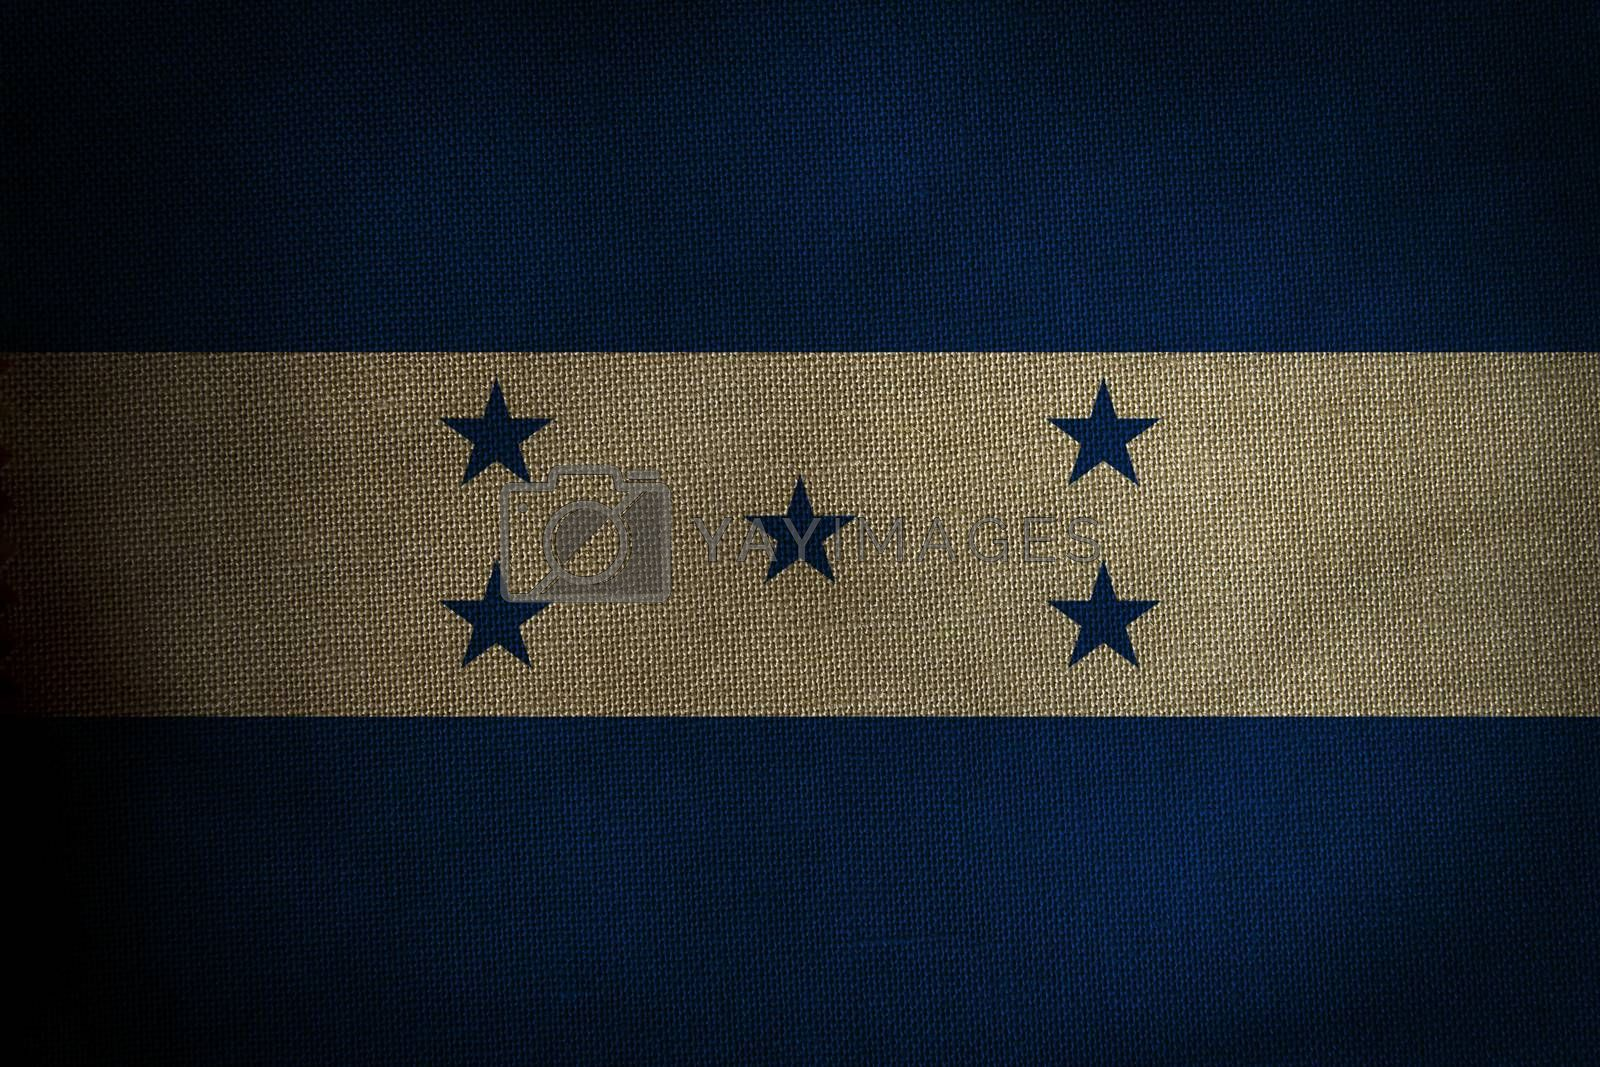 The central part of the flag of the state of Honduras